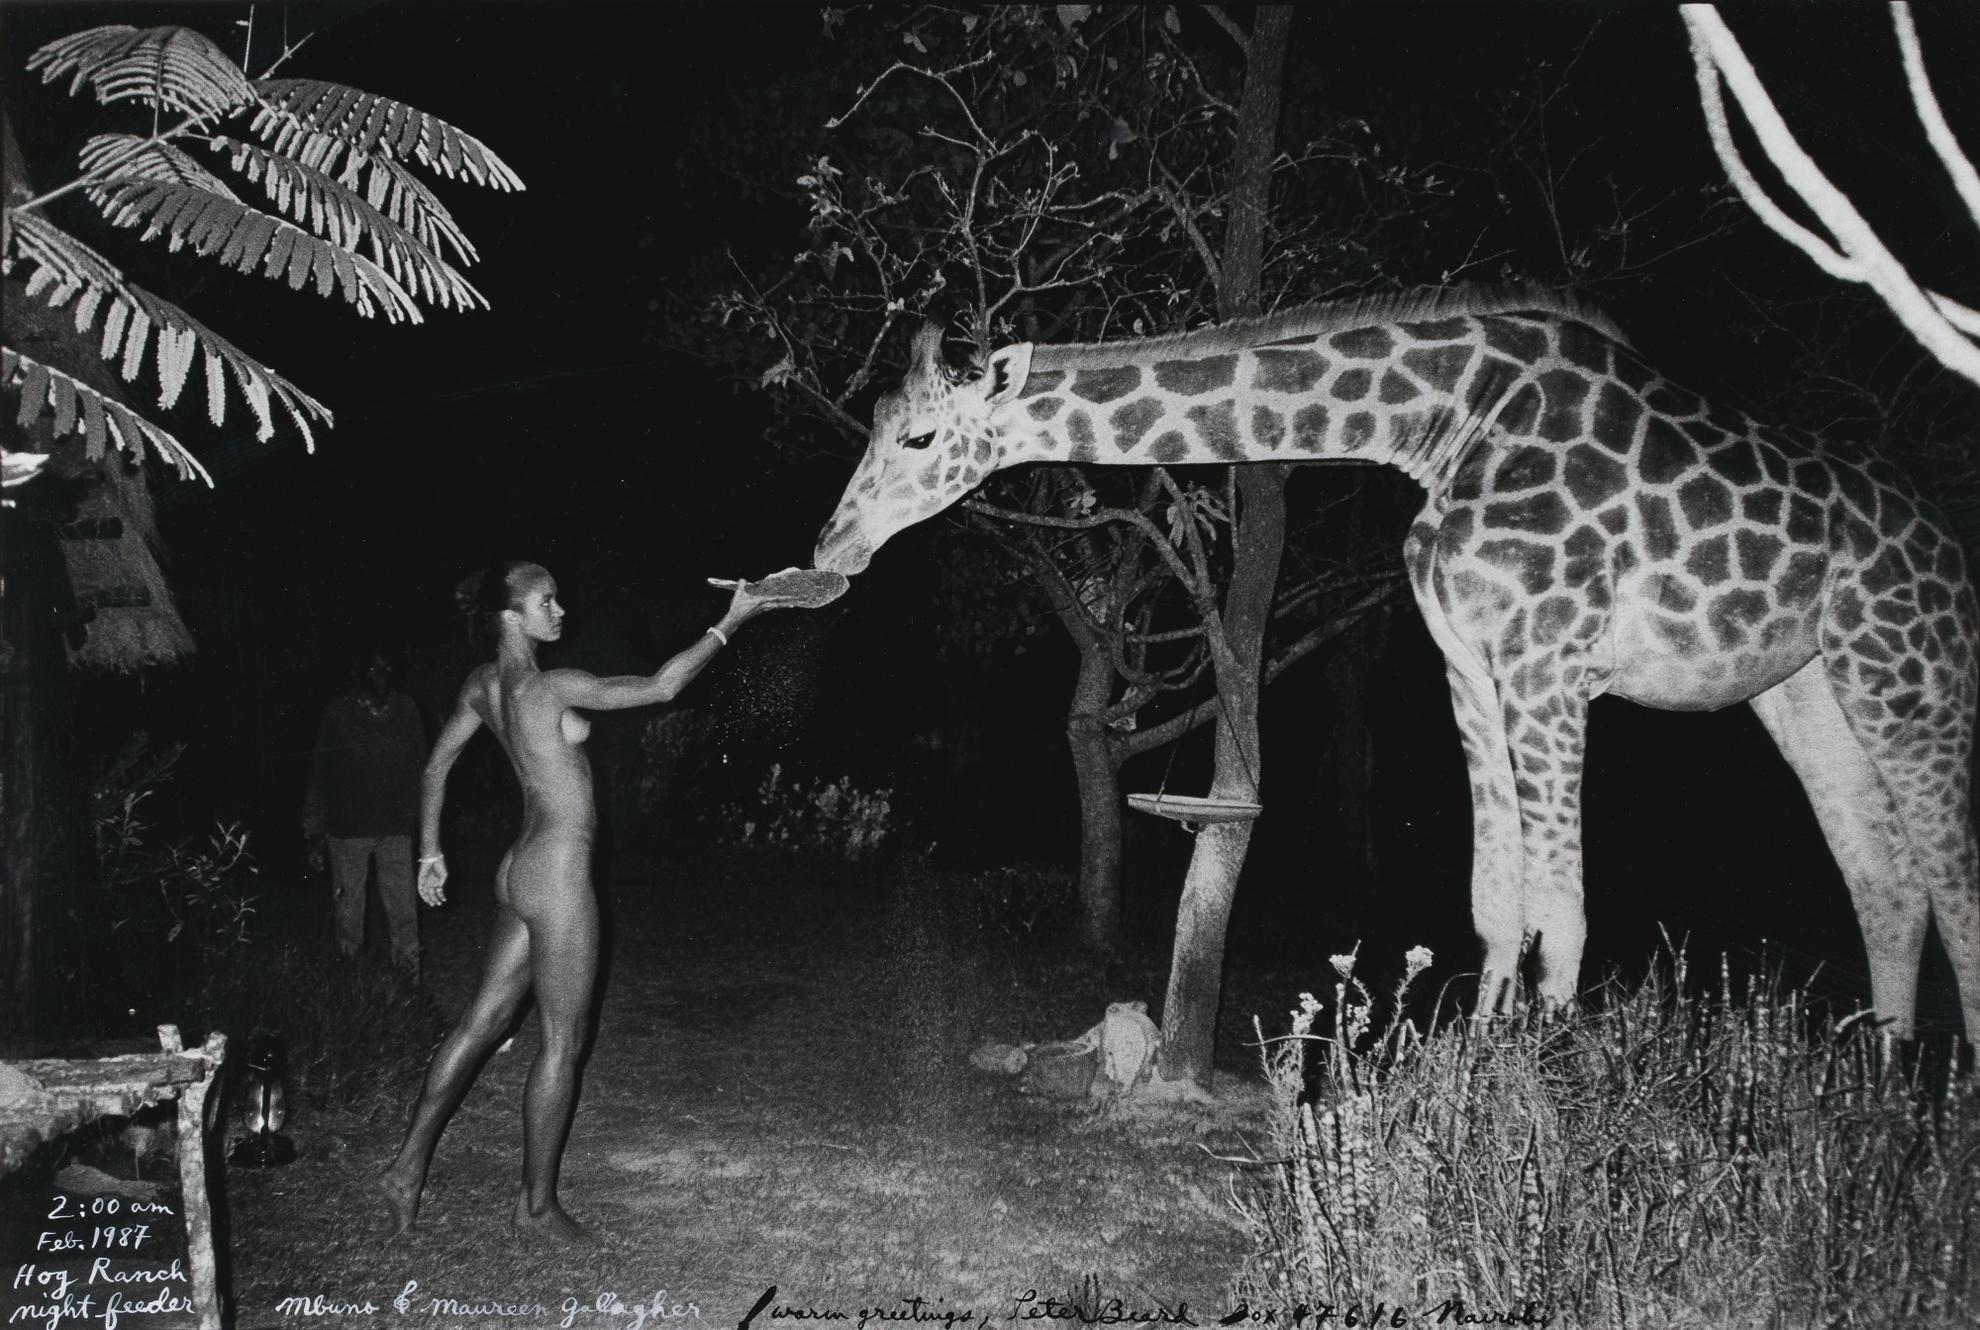 Peter Beard-Hog Ranch Front Lawn, Night Feeder (2:00 Am) With Maureen Gallagher & Mbuno, Feb. 1987-